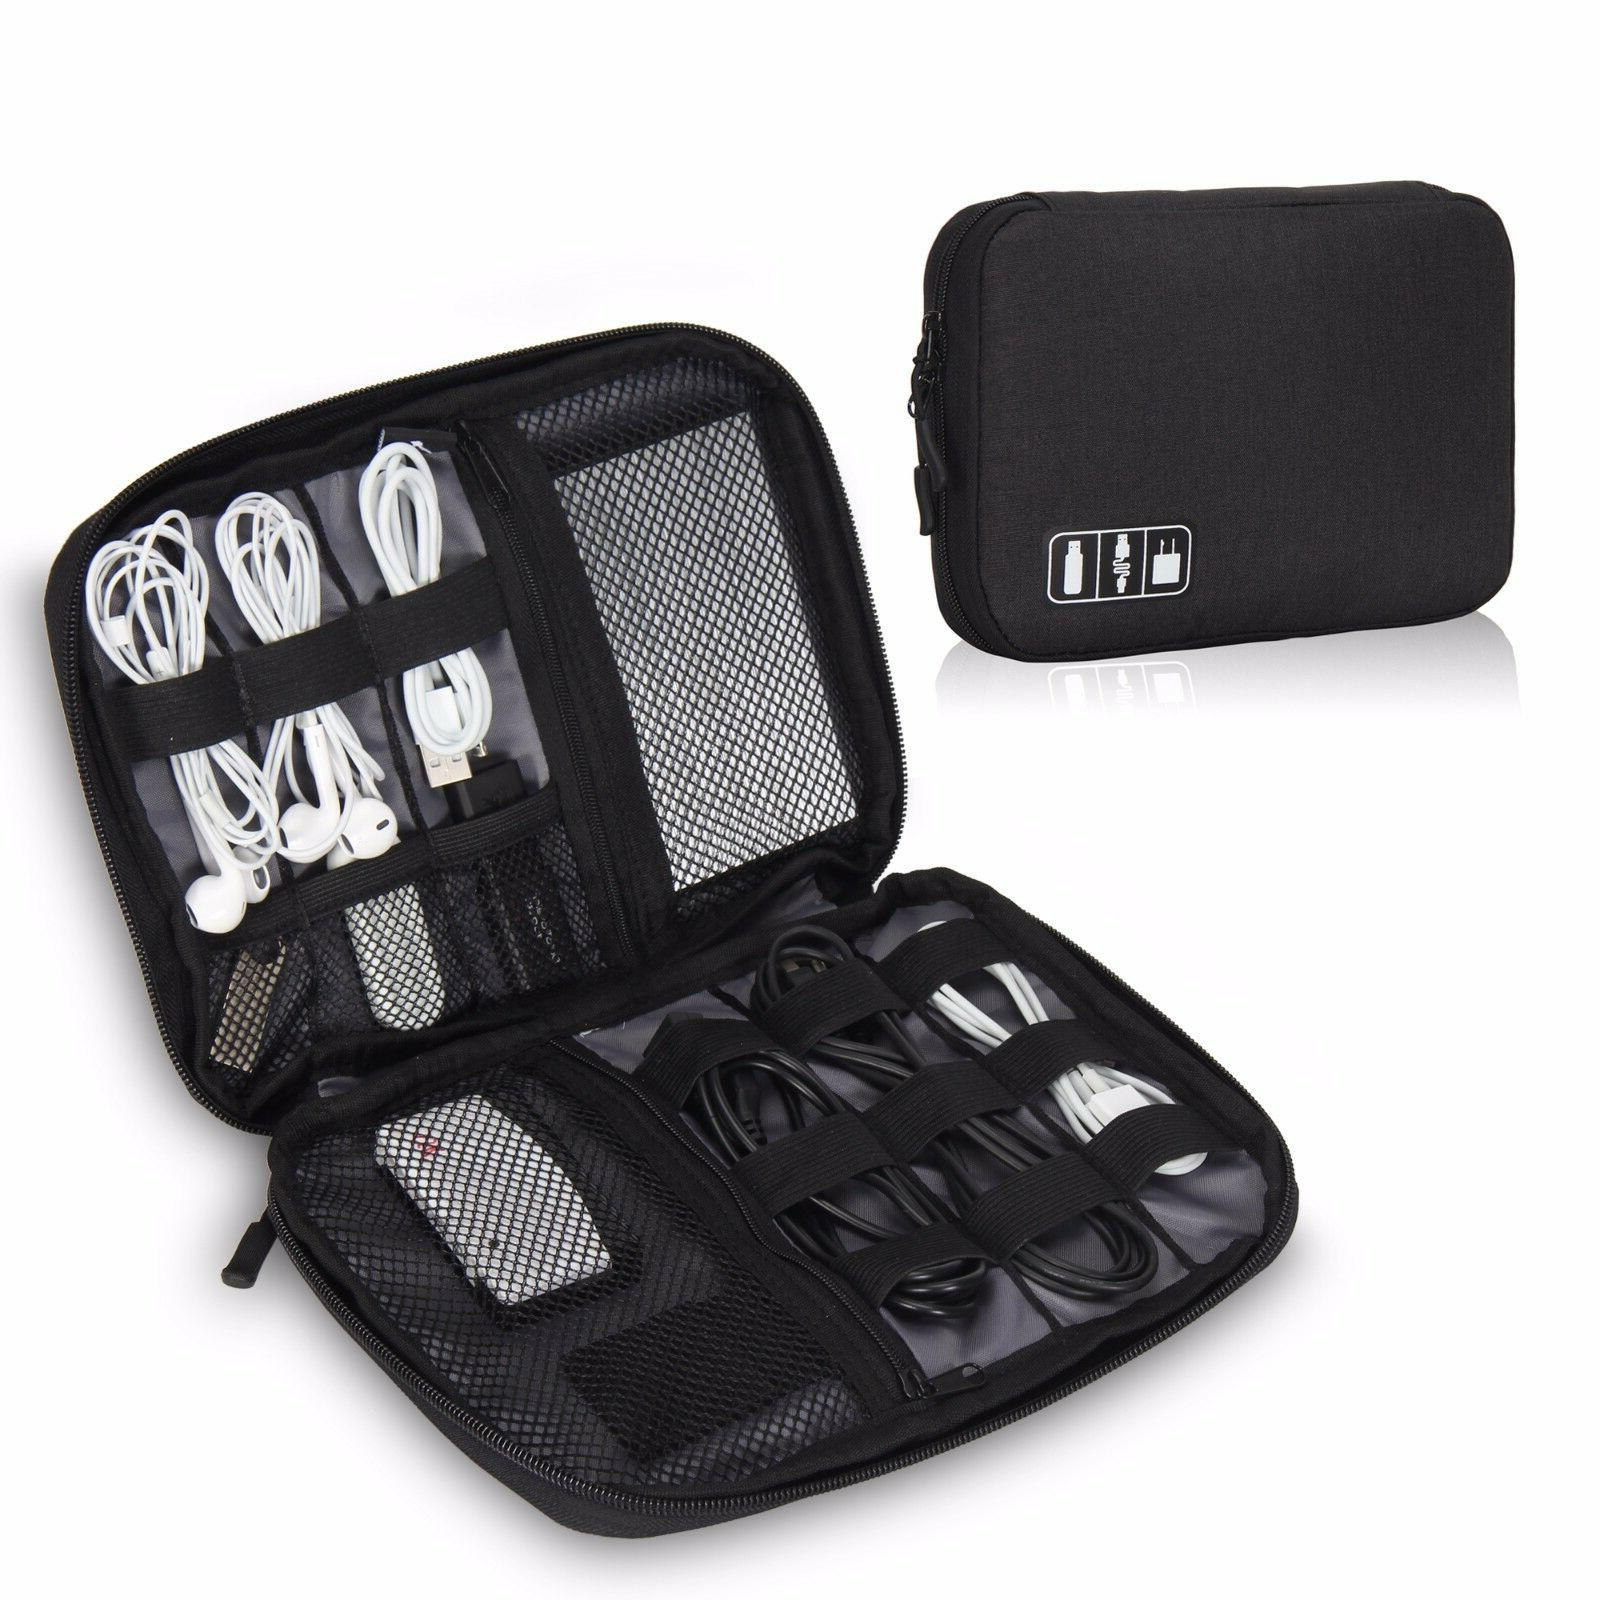 Travel Cable Cord Organizer Electronics Accessories Bag USB